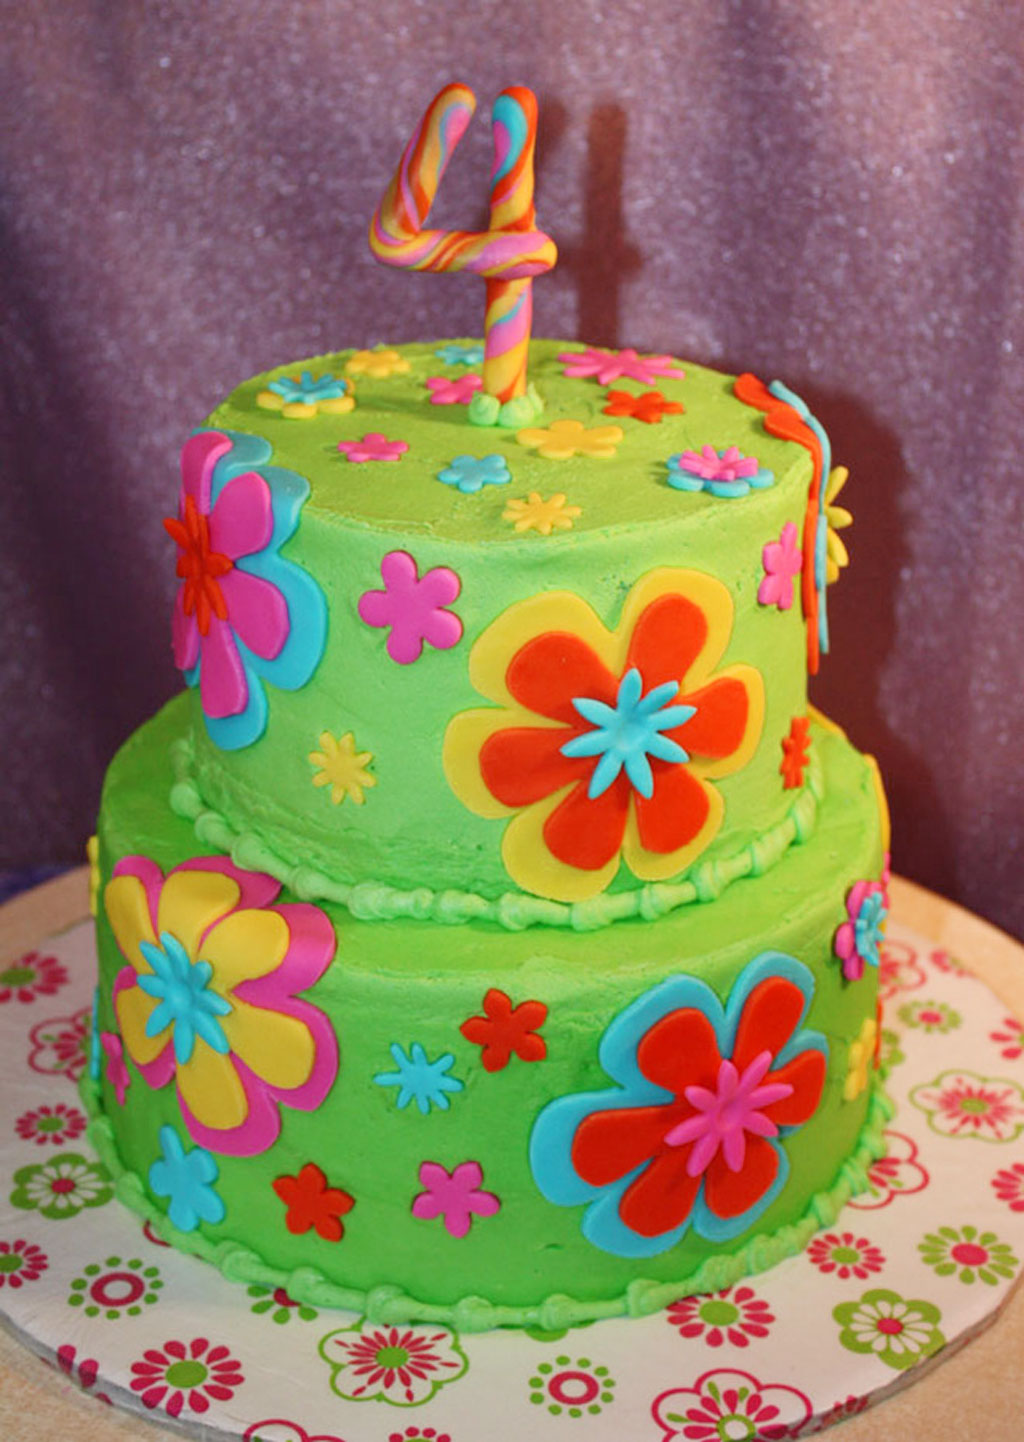 Fondant Cake Design For Birthday : Fondant Flowers Birthday Cakes Birthday Cake - Cake Ideas ...